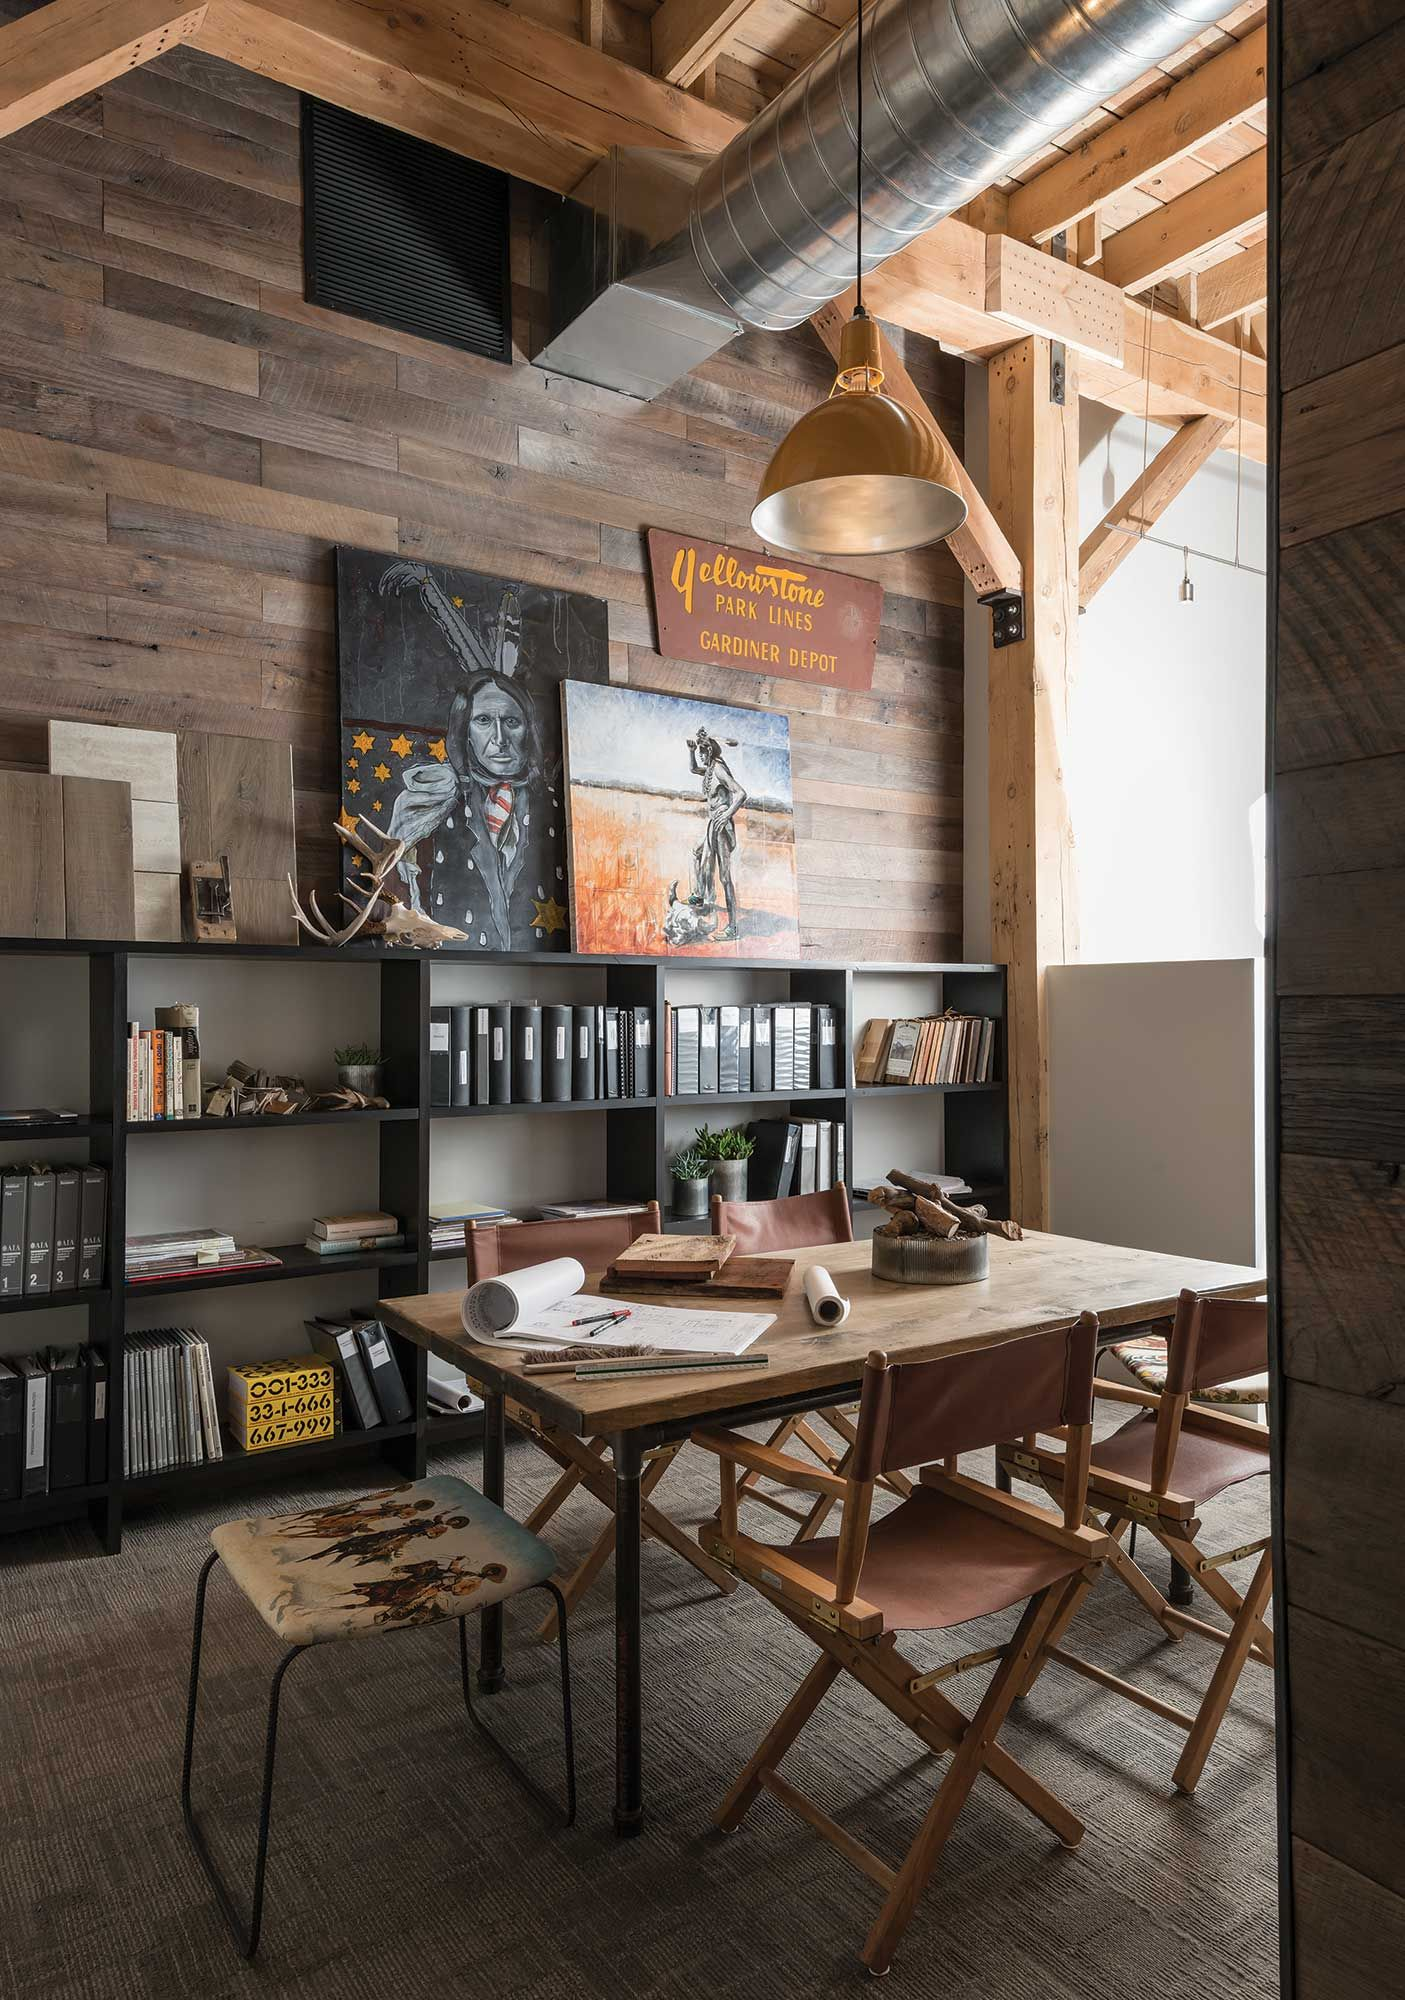 Big Sky Journal - Reconfiguringa space that was oncea pea cannery, MillerArchitects preservedthe industrial historyof the building withopen rafters, naturallight, and high ceilings.